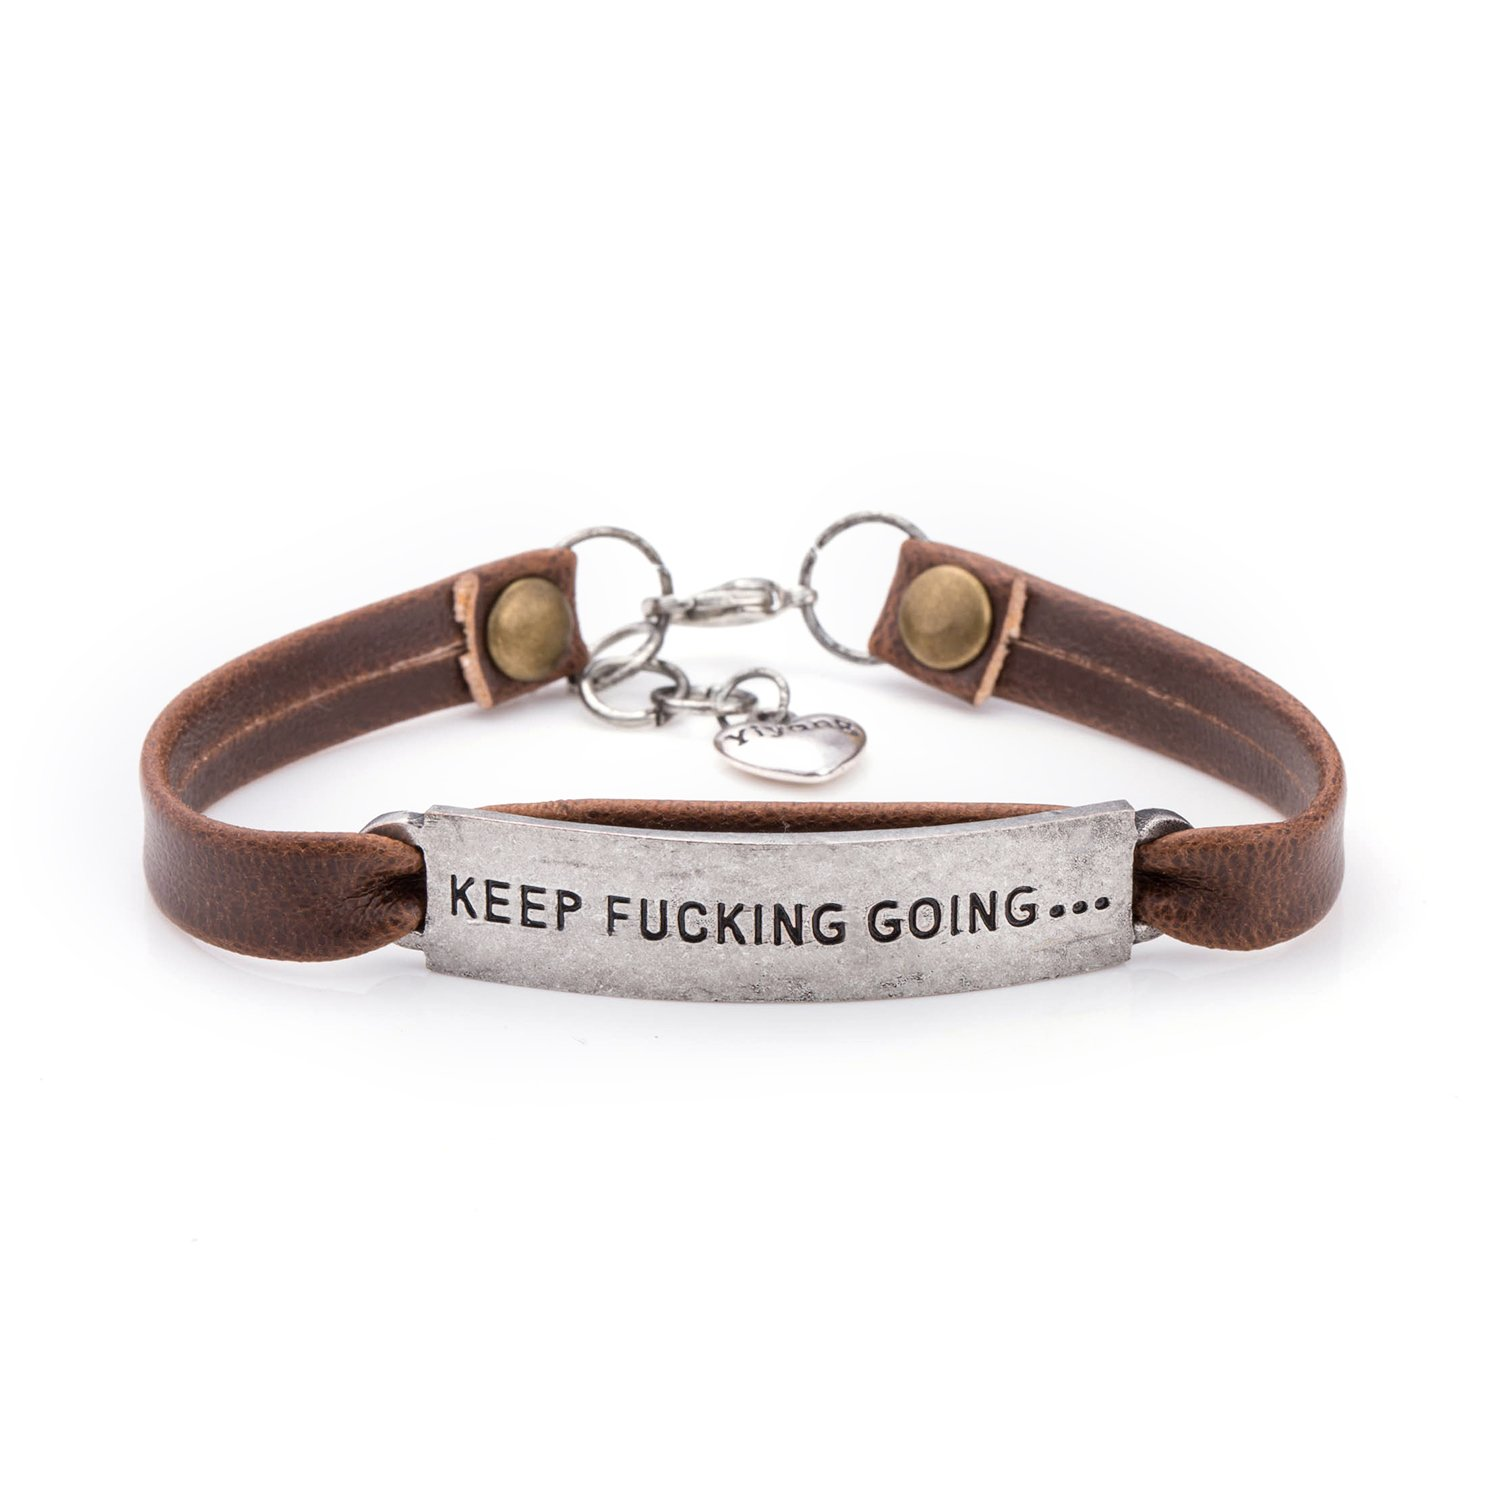 UNQJRY Leather Bracelets for Friends Inspirational Engraved Personalized Gift Jewelry Keep Fucking Going